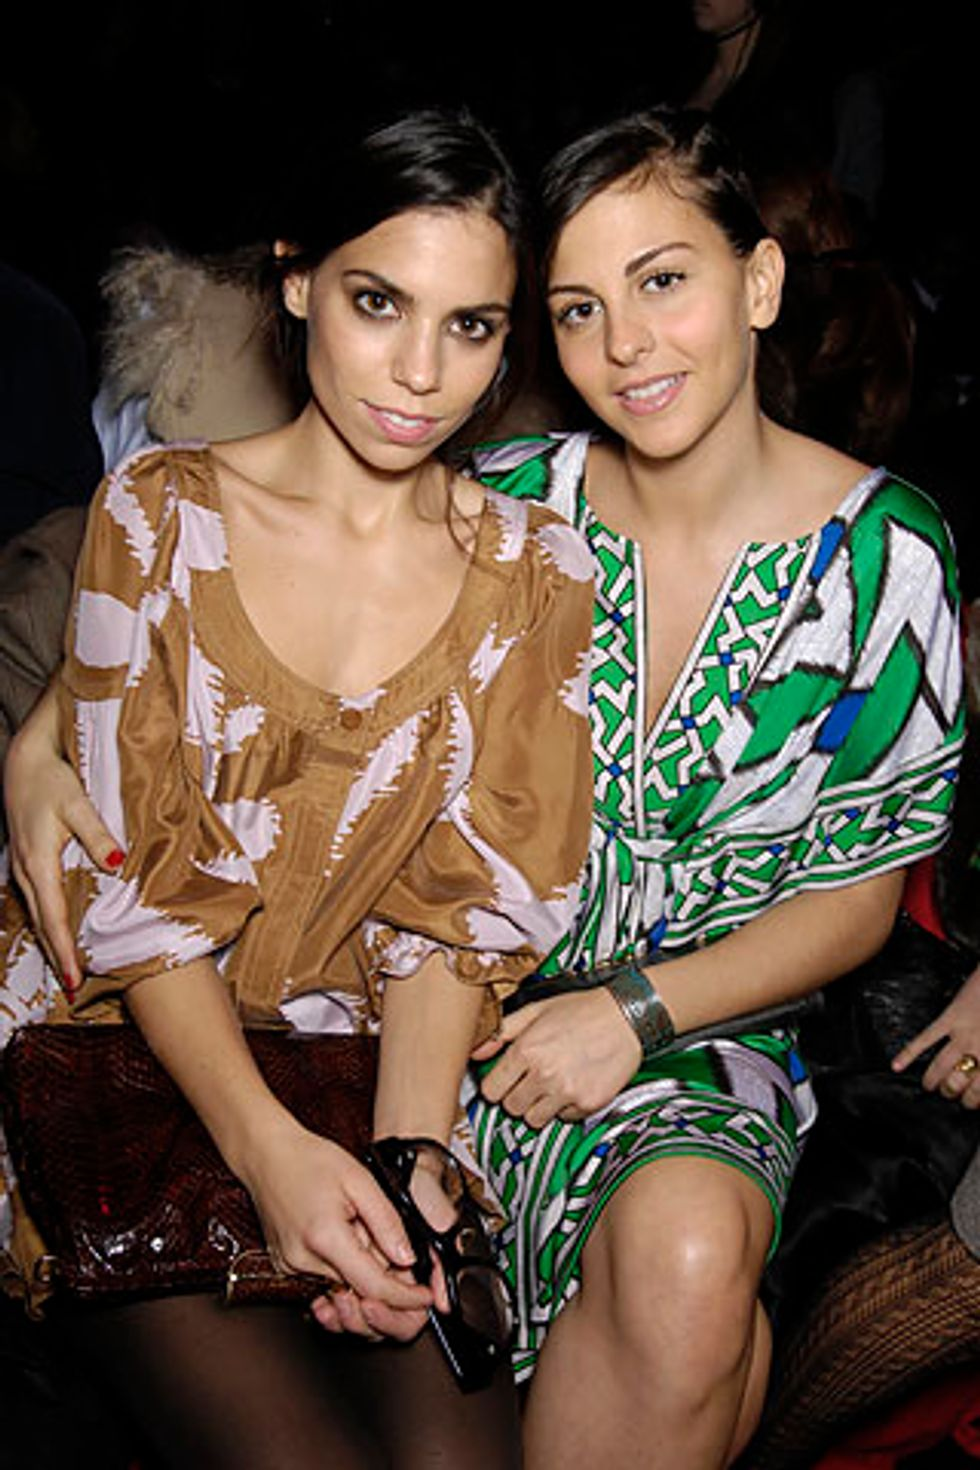 Cute Couples of Fashion Week: Ally Hilfiger and Nina Clemente at DVF